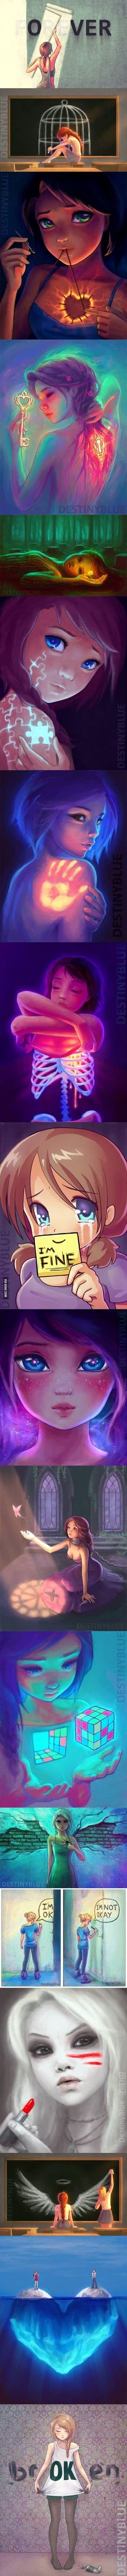 Hello darkness my old friend - 9GAG